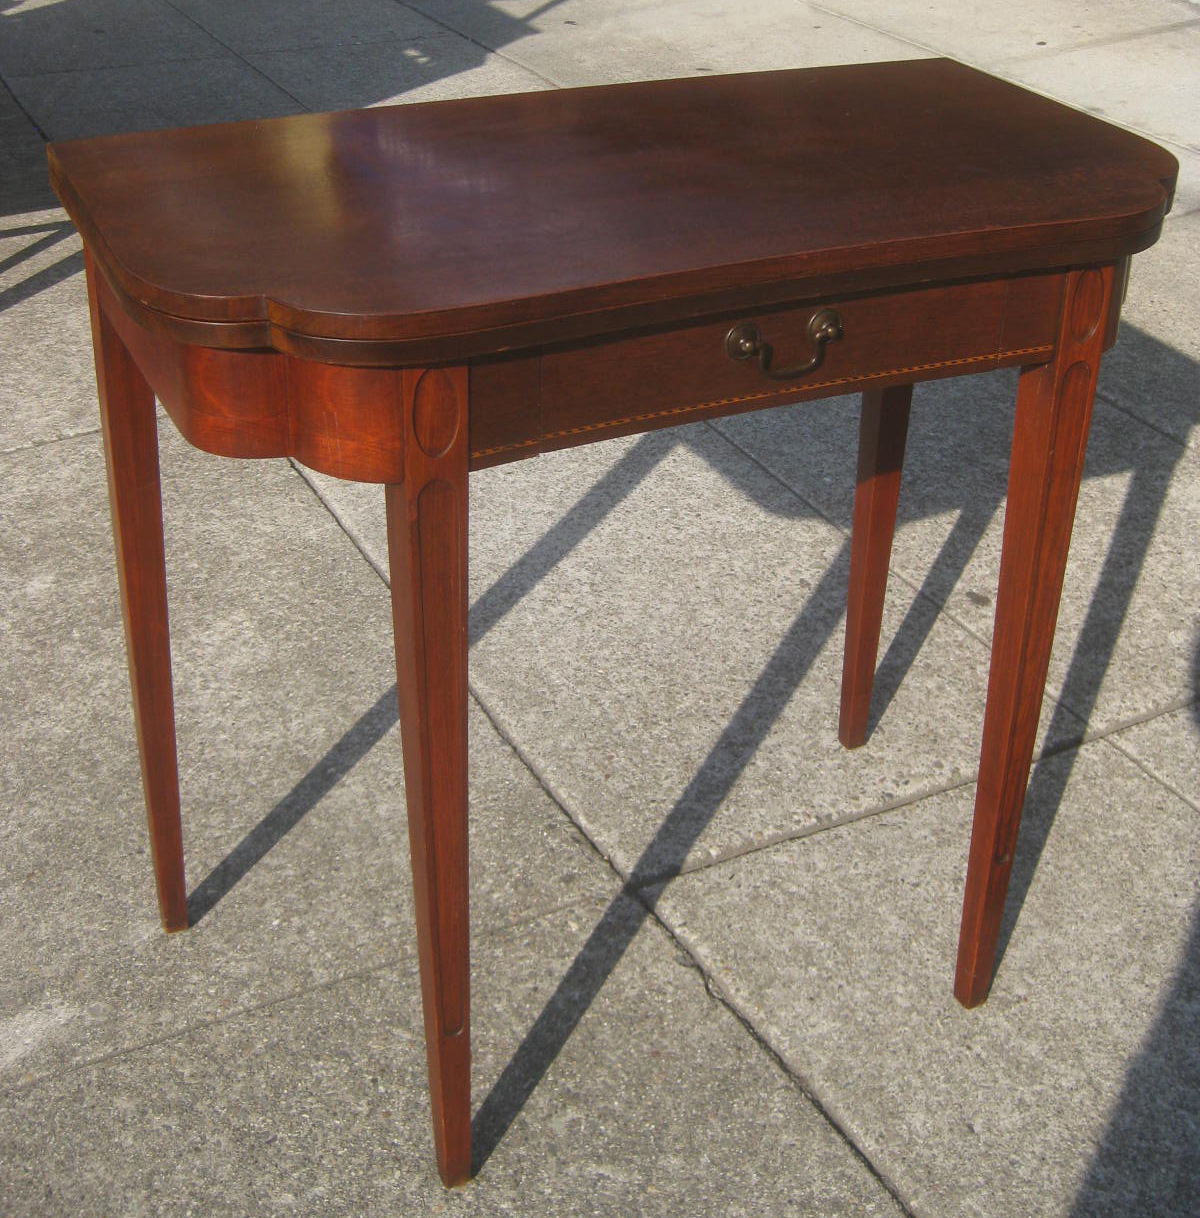 Uhuru furniture collectibles sold console eating - Table console extensible solde ...